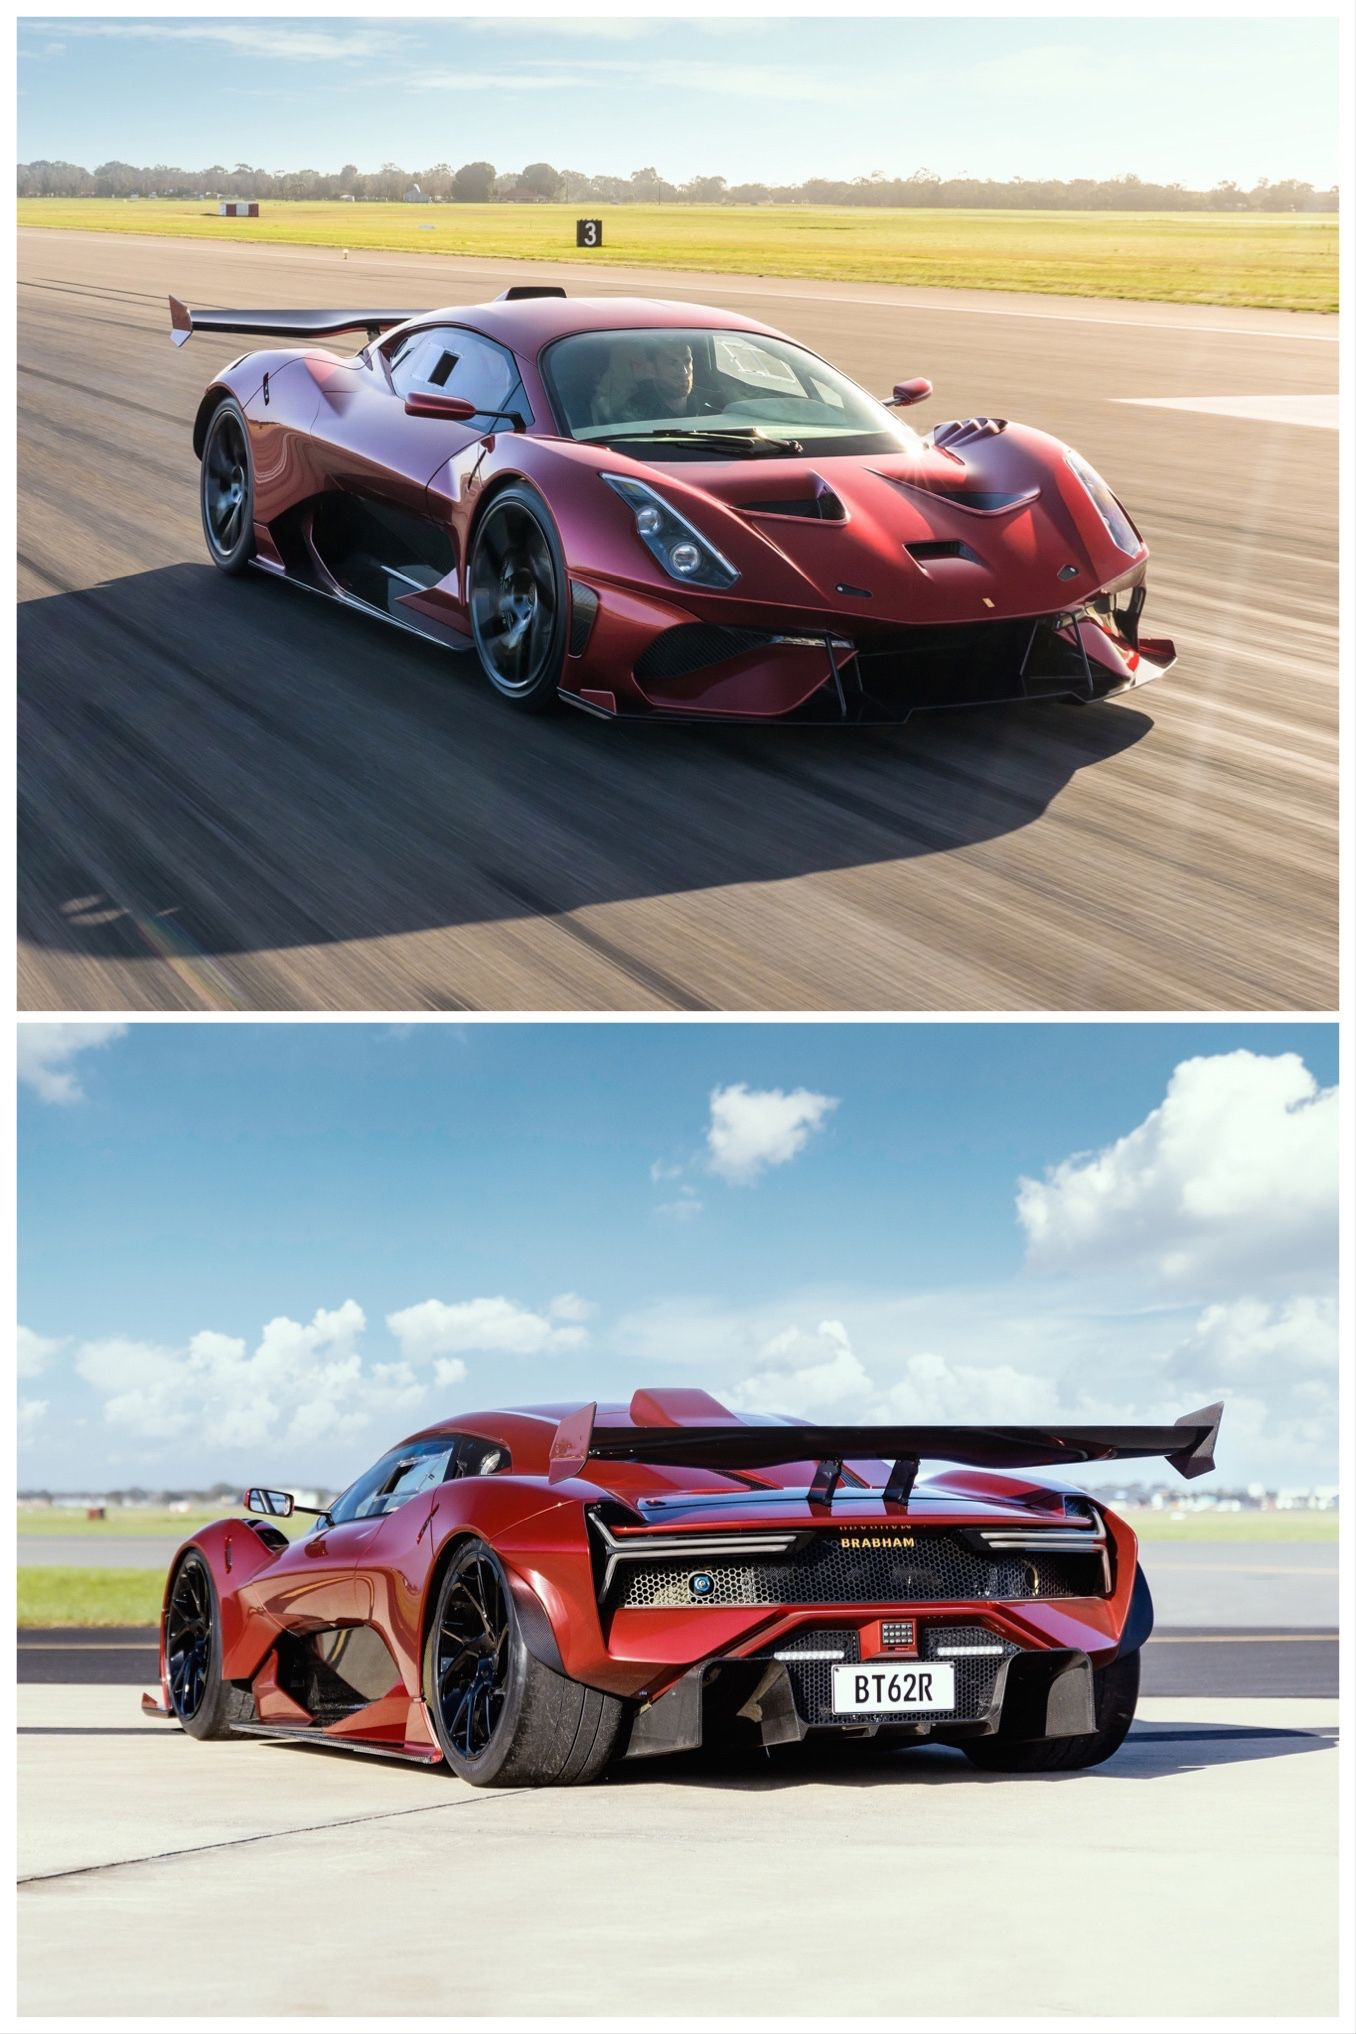 The Brabham Bt62r Is The Hardest Core Road Legal Supercar You Can Buy In 2020 Super Cars Pagani Koenigsegg